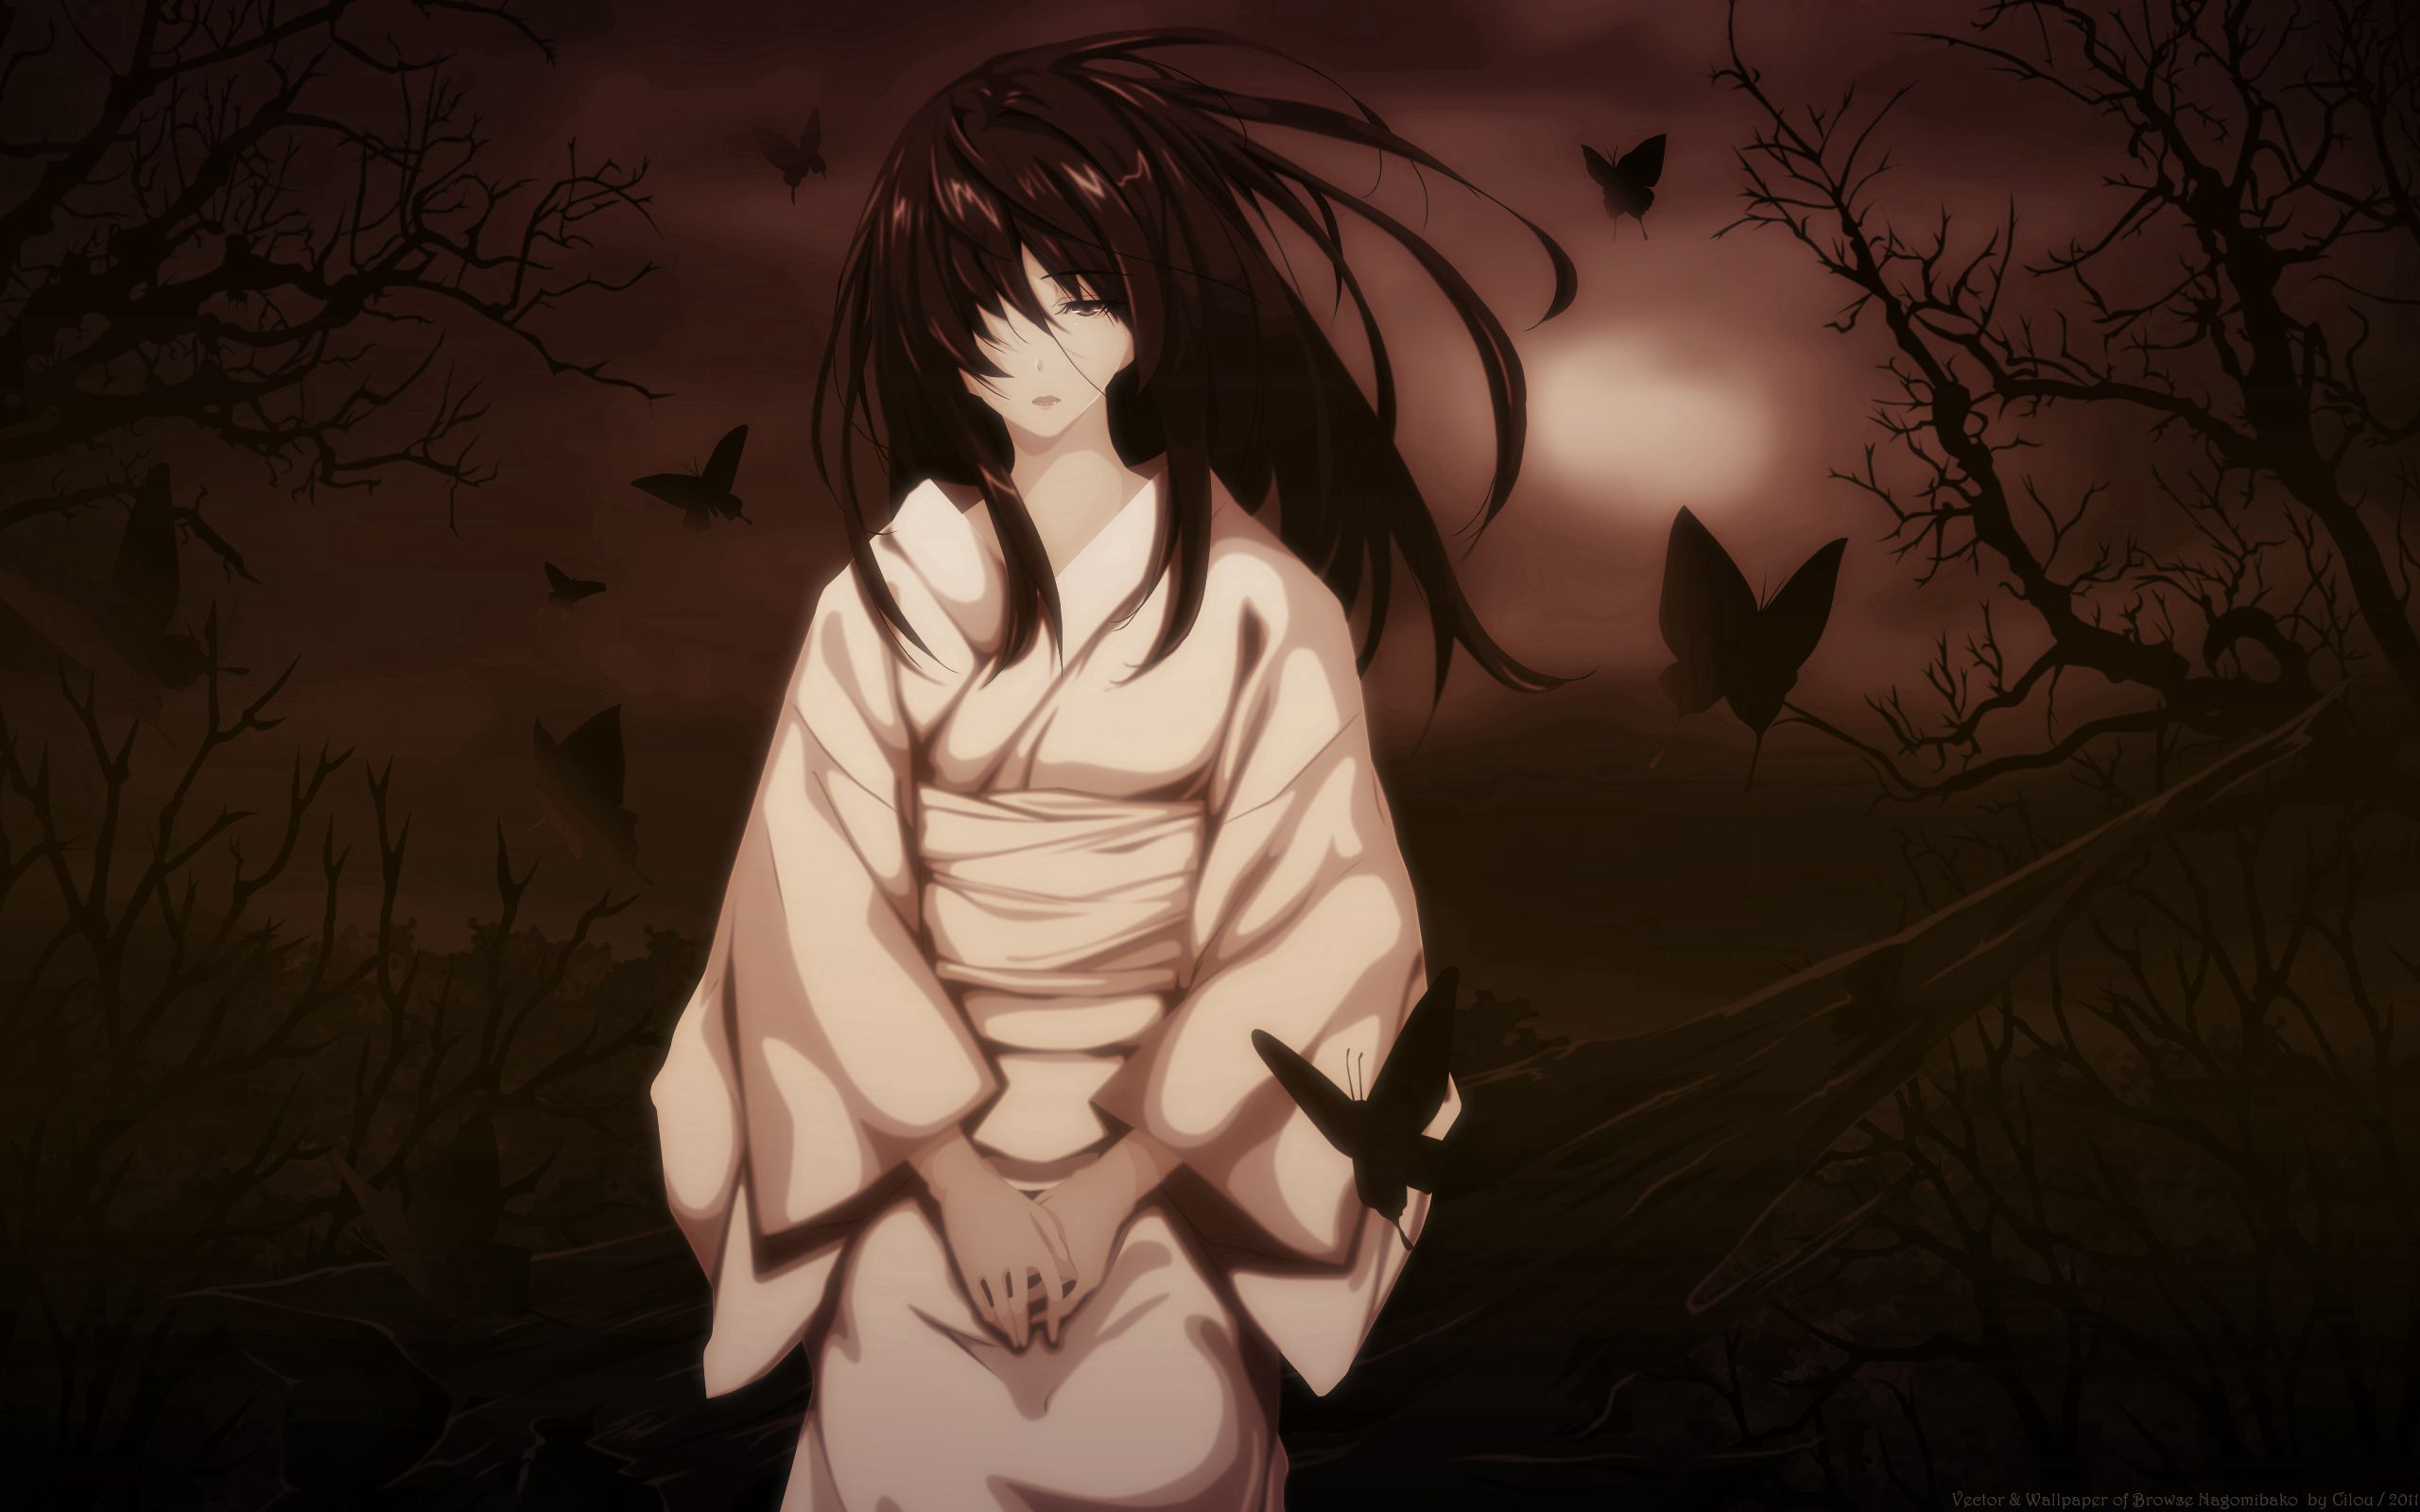 112590 Screensavers and Wallpapers Brunette for phone. Download Anime, Butterflies, Night, Sadness, Girl, Kimono, Sorrow, Brunette, Wind pictures for free